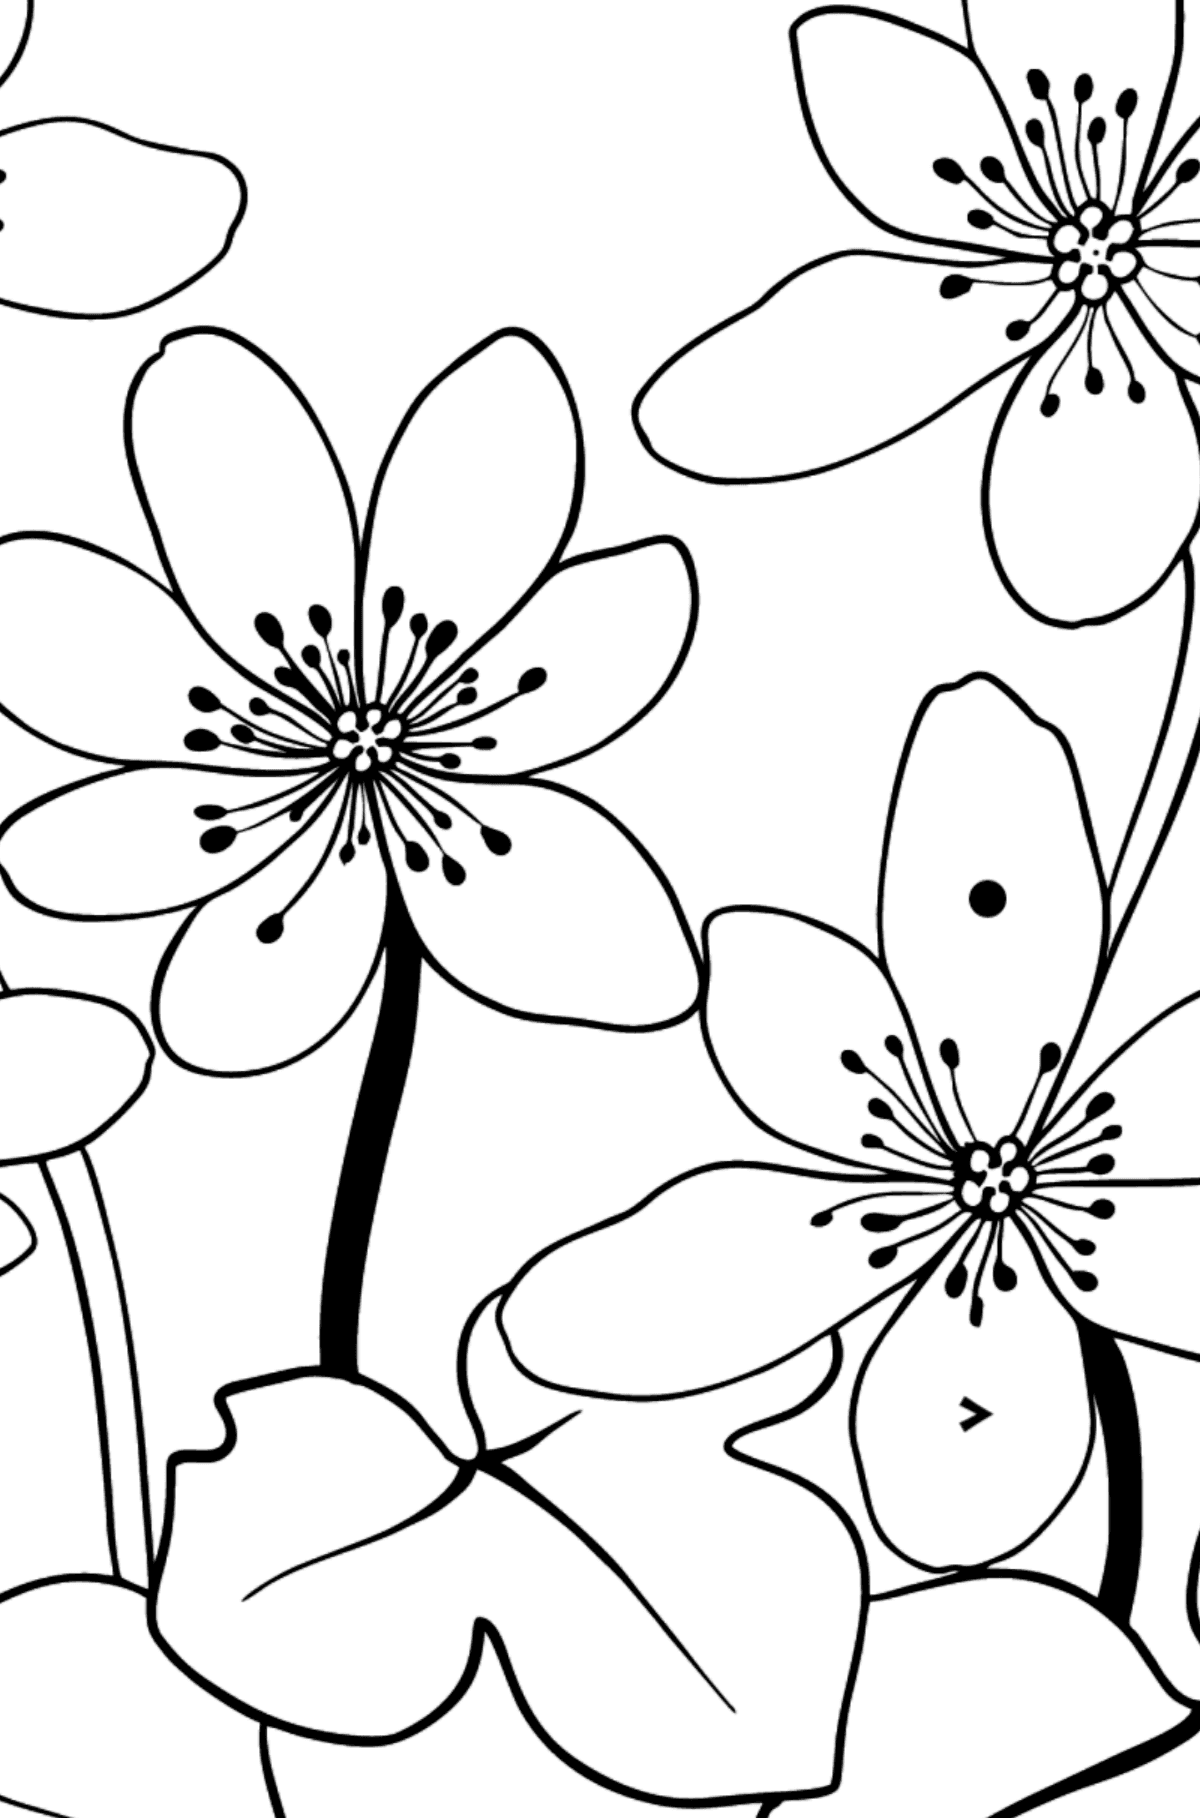 Flower Coloring Page - A Yellow and Orange Hepatica - Coloring by Symbols for Kids